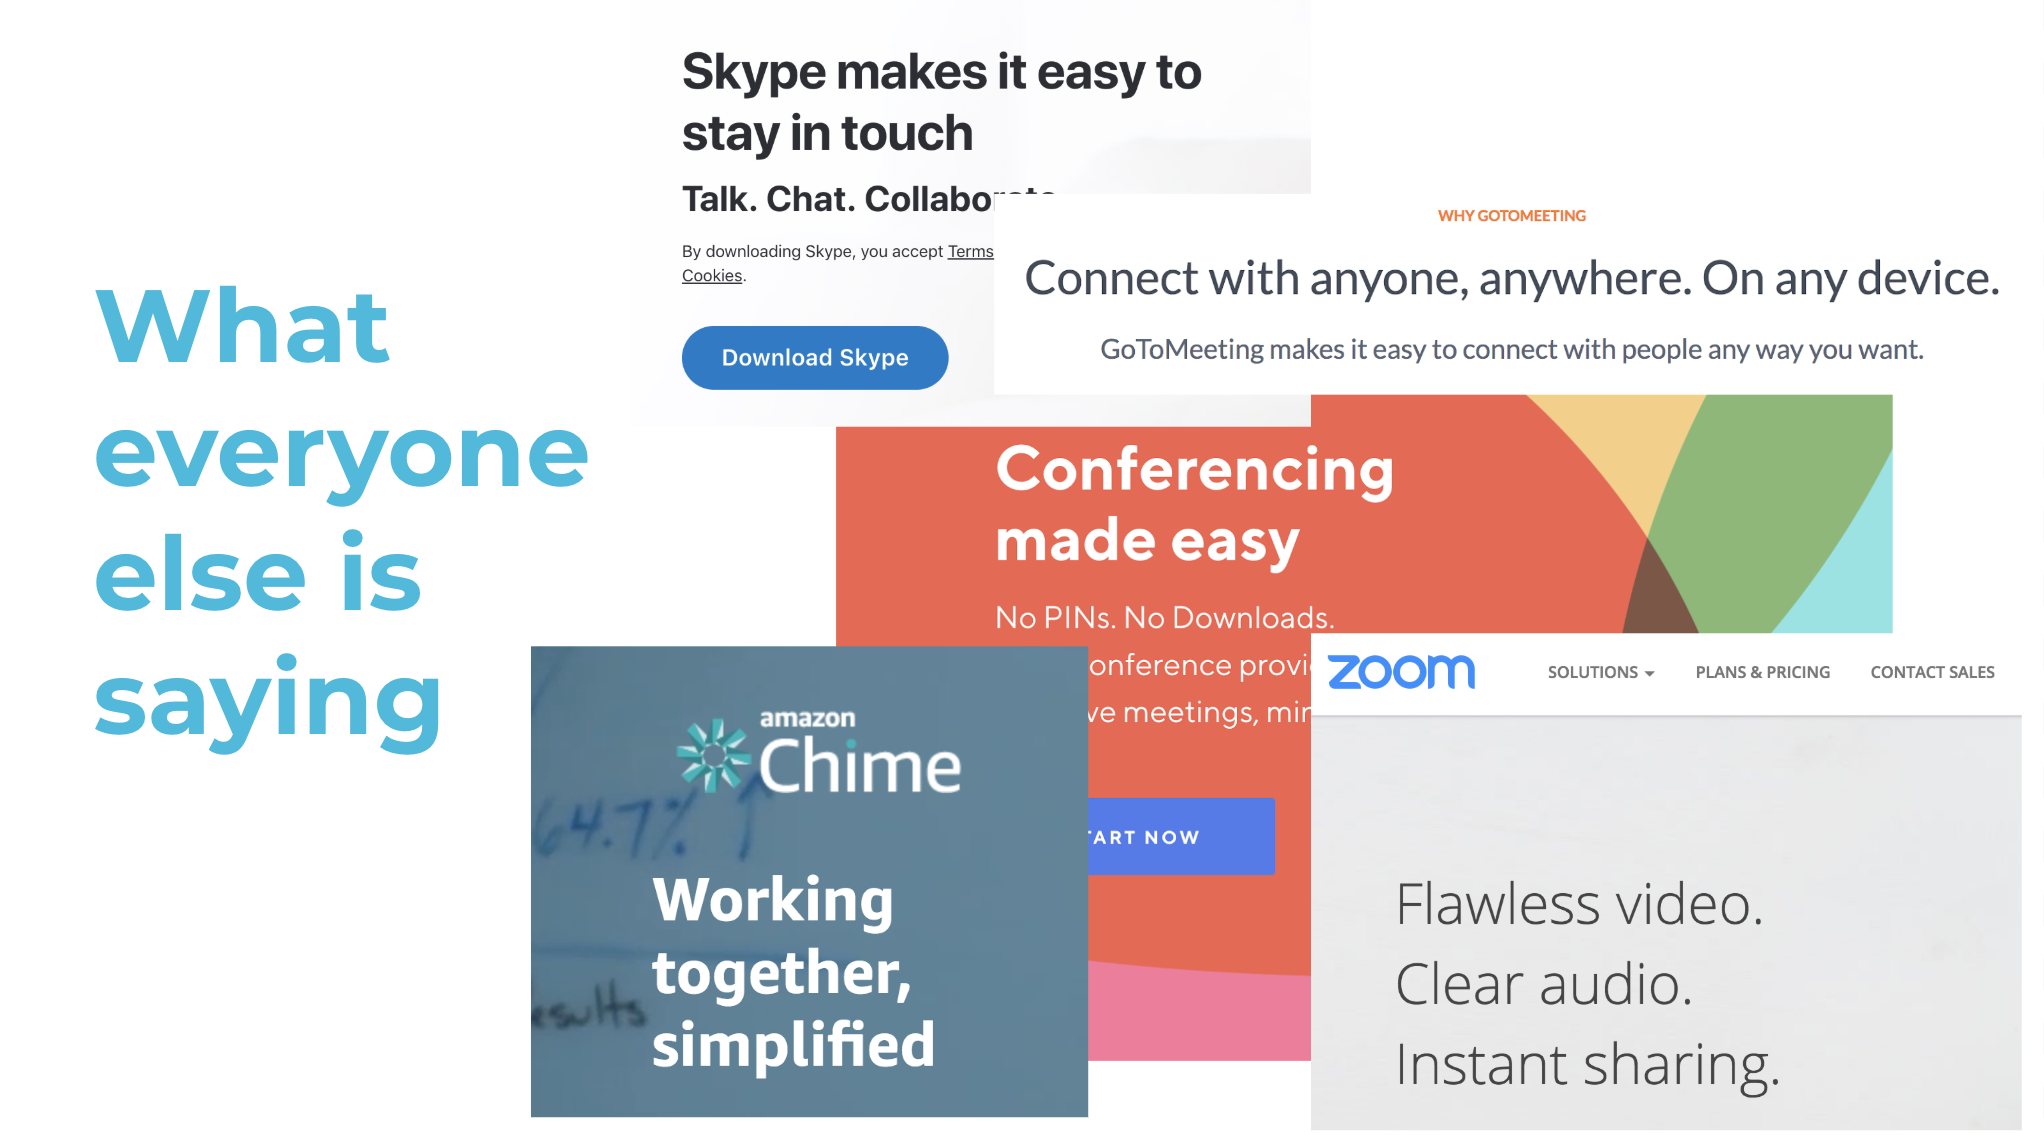 The conference call category consists of monotonous messaging about connection and ease of use. We knew we had to shake things up.